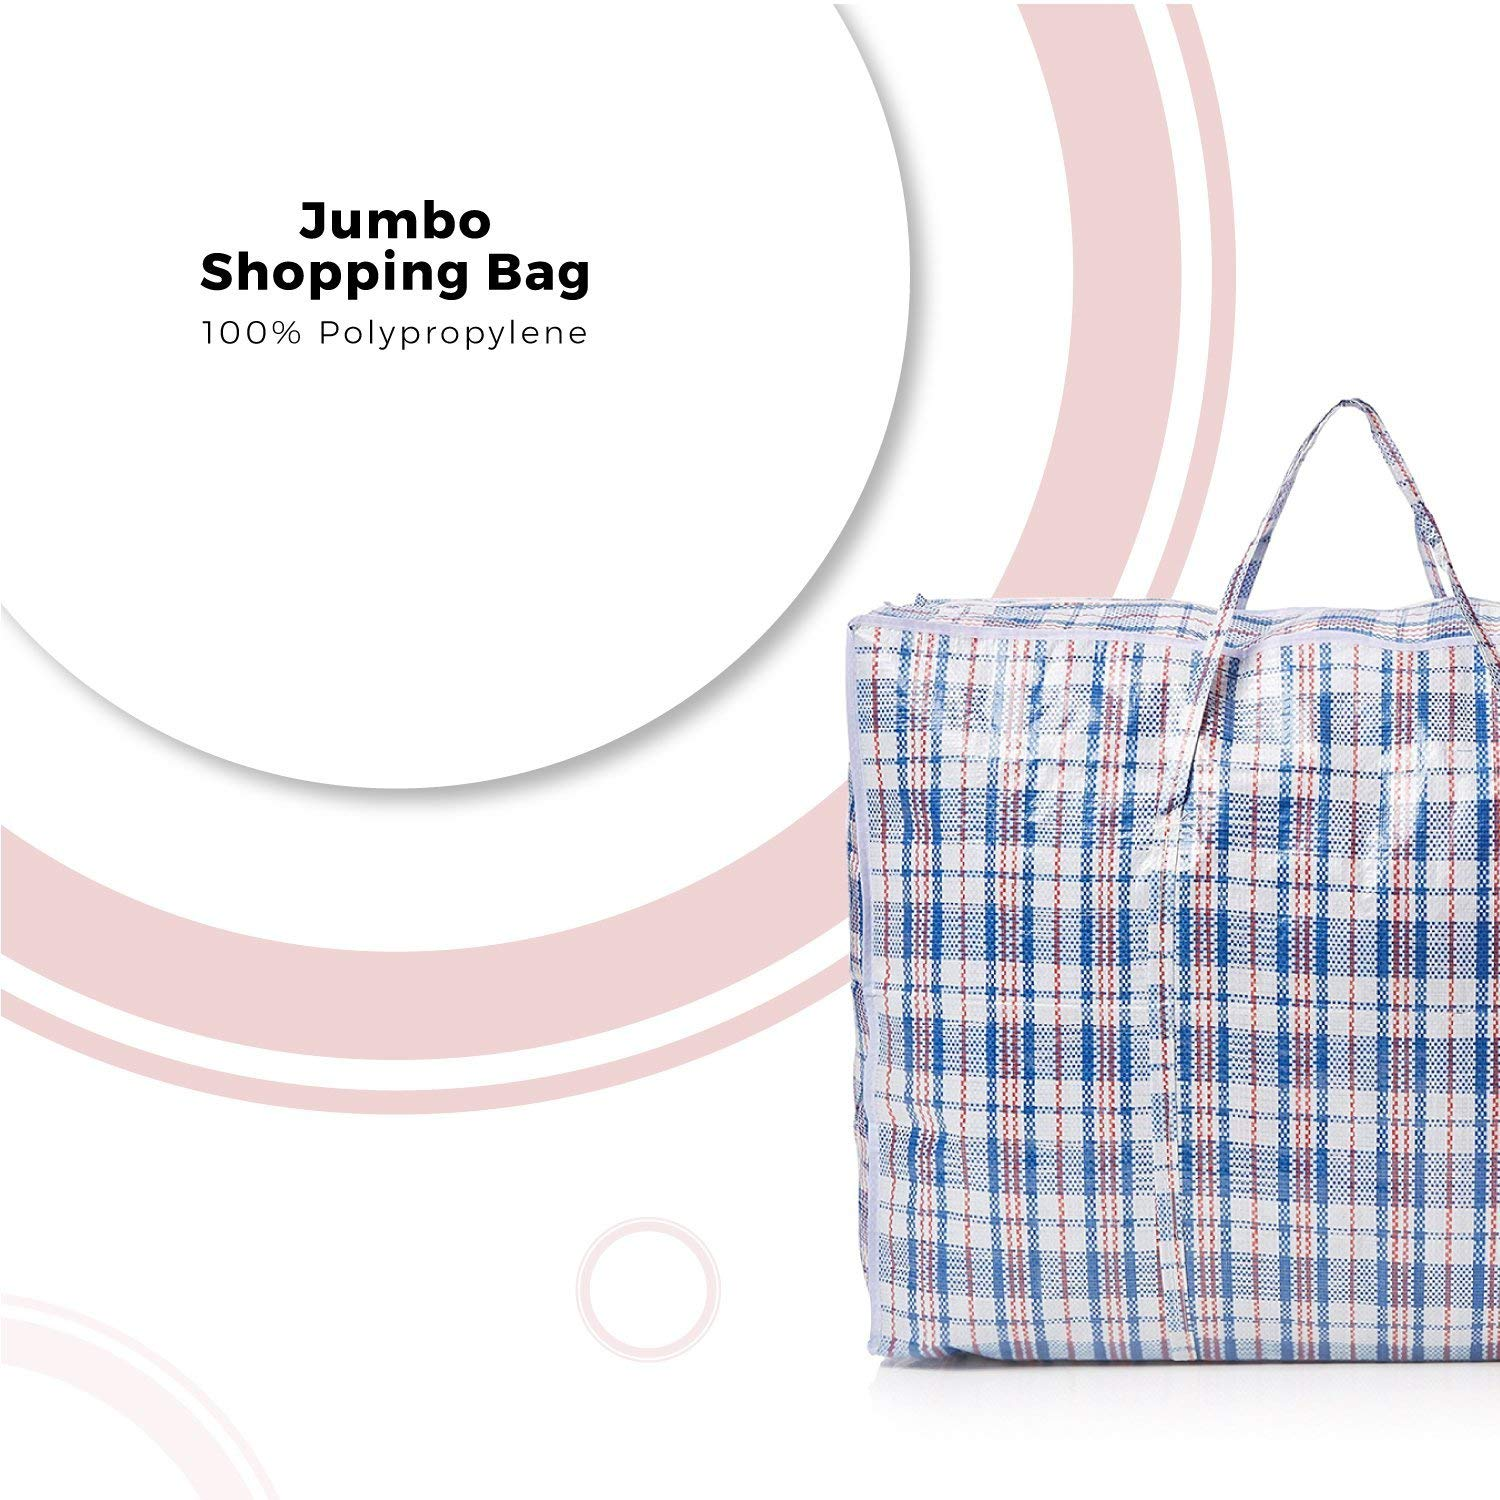 Large Laundry Bags And Storage Bag With Zips Perfect For Travelling Storage Shopping And Moving House Packing Reusable and Waterproof 3 Pack